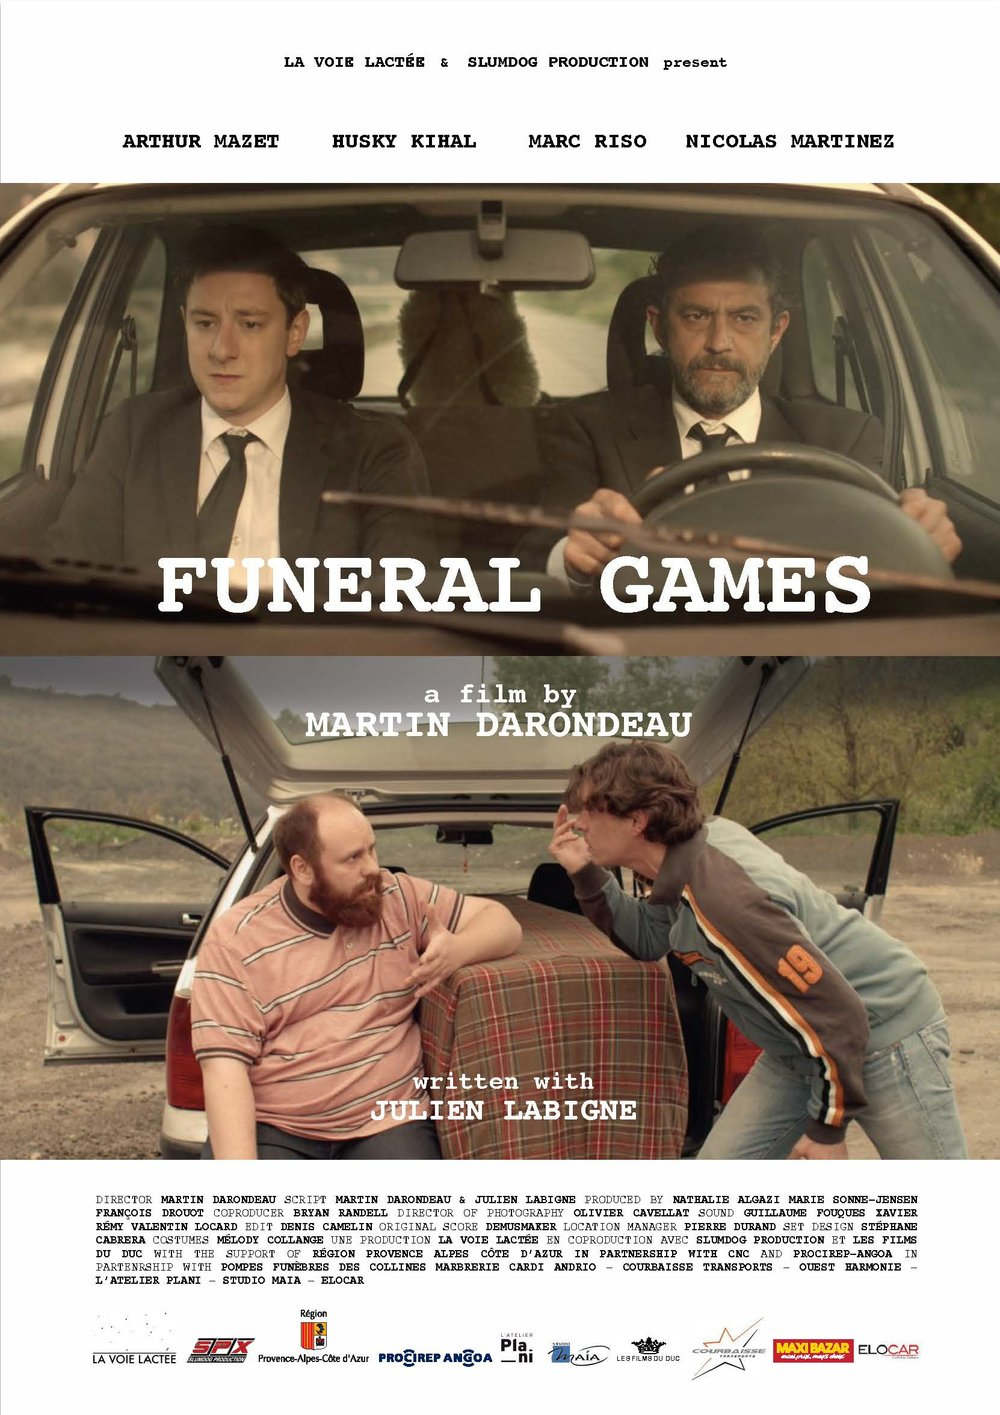 Funeral Games - Martin Darondeau